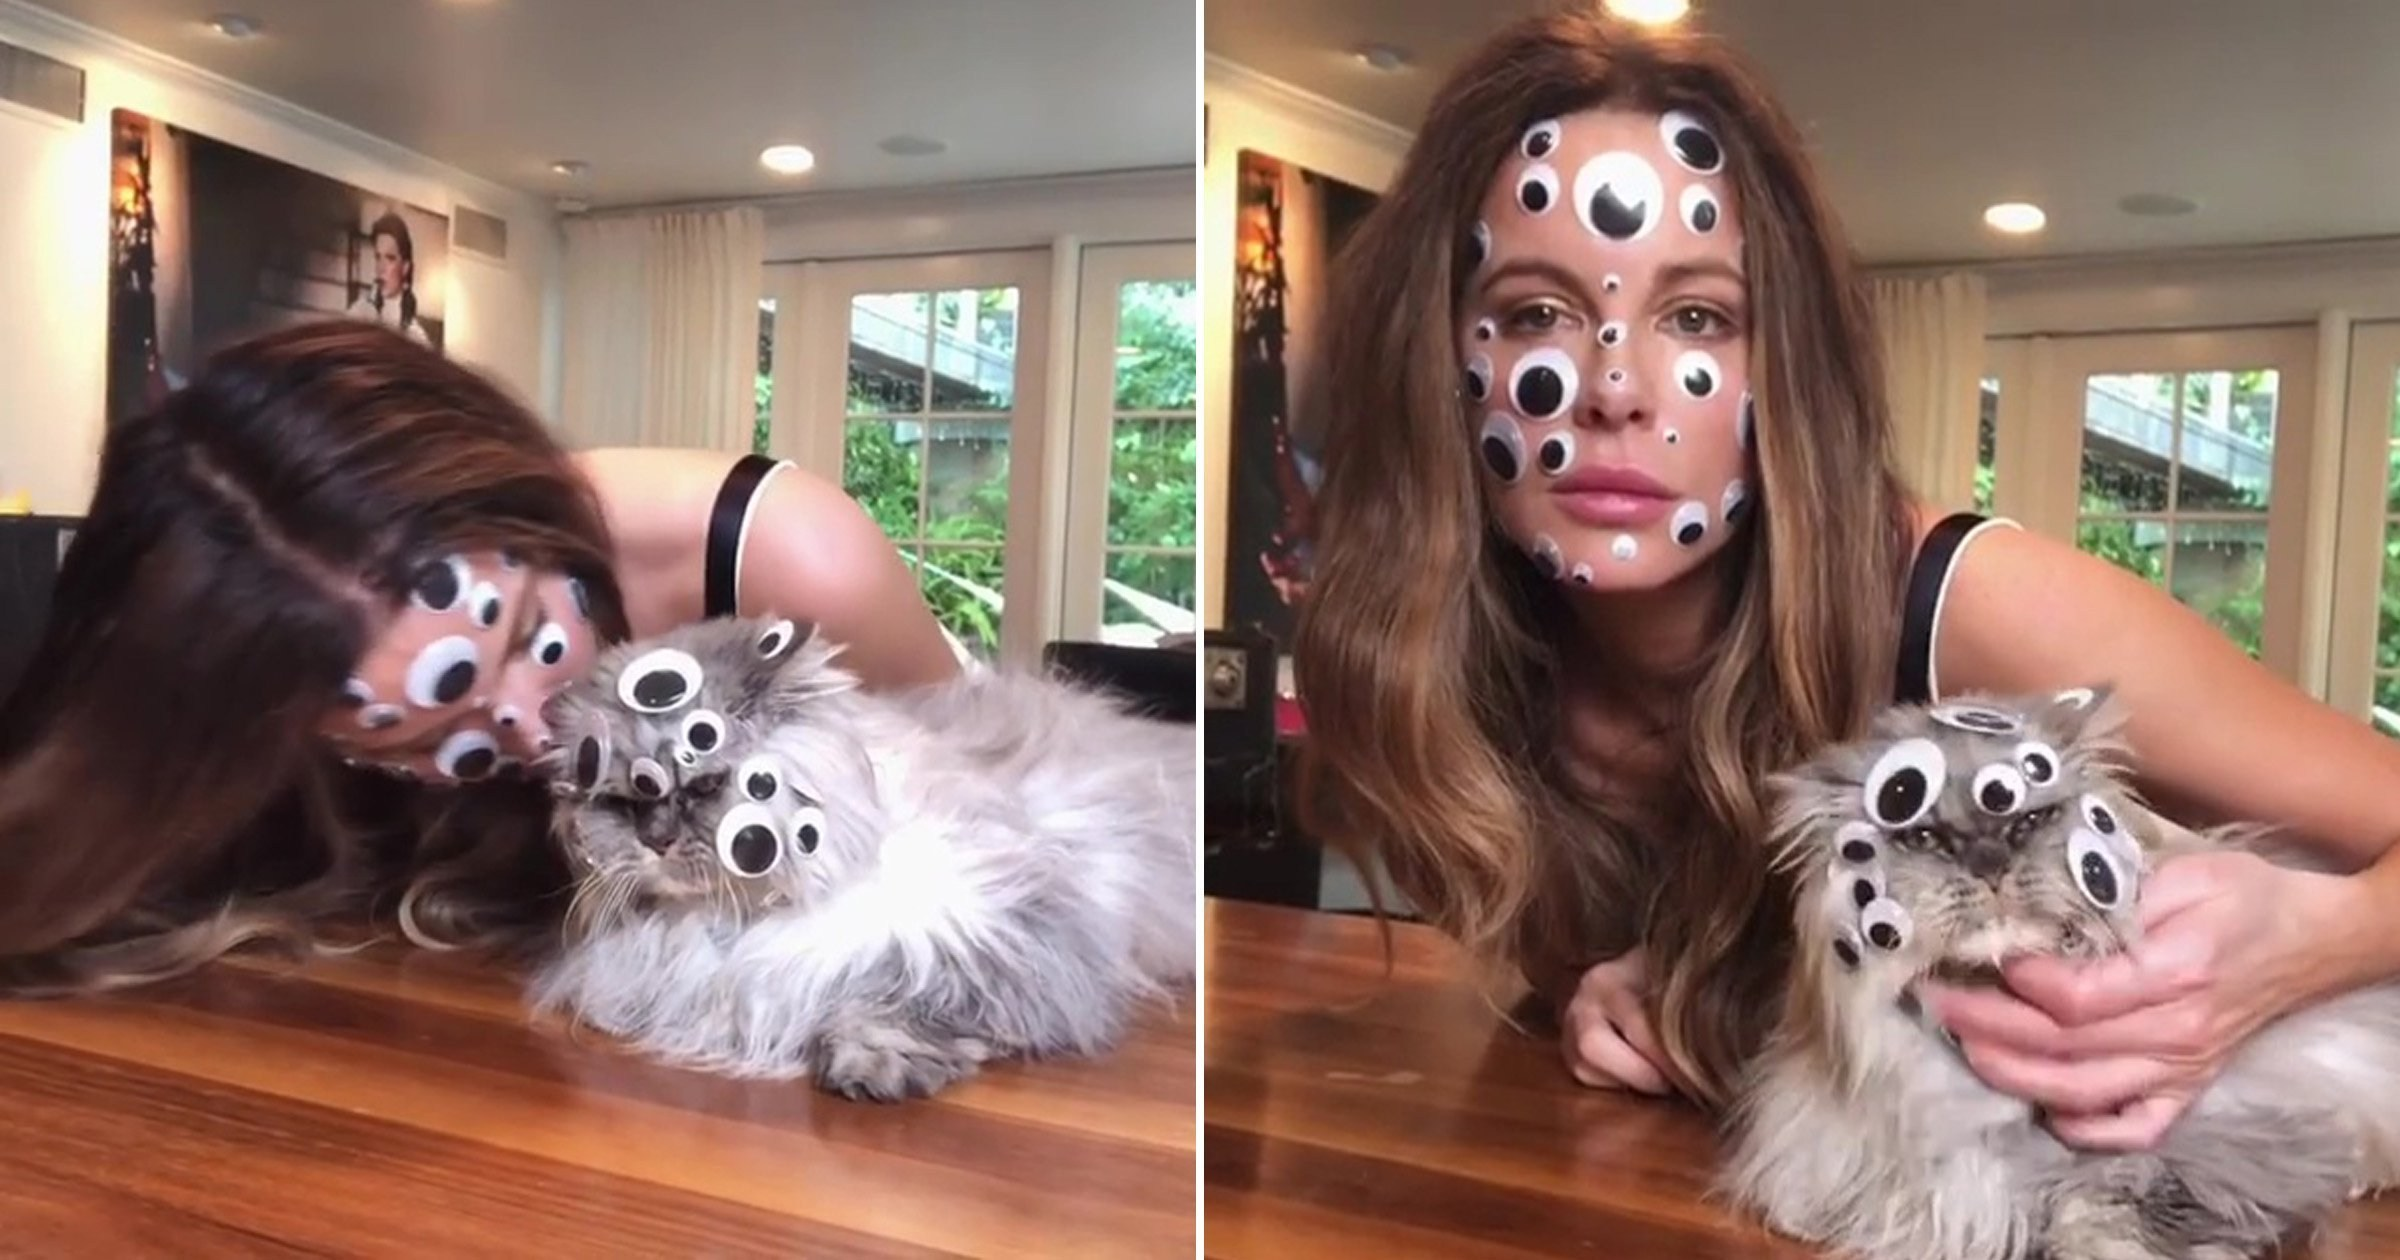 Nestia Kate Beckinsale And Her Cat Covered In Googly Eyes Is A